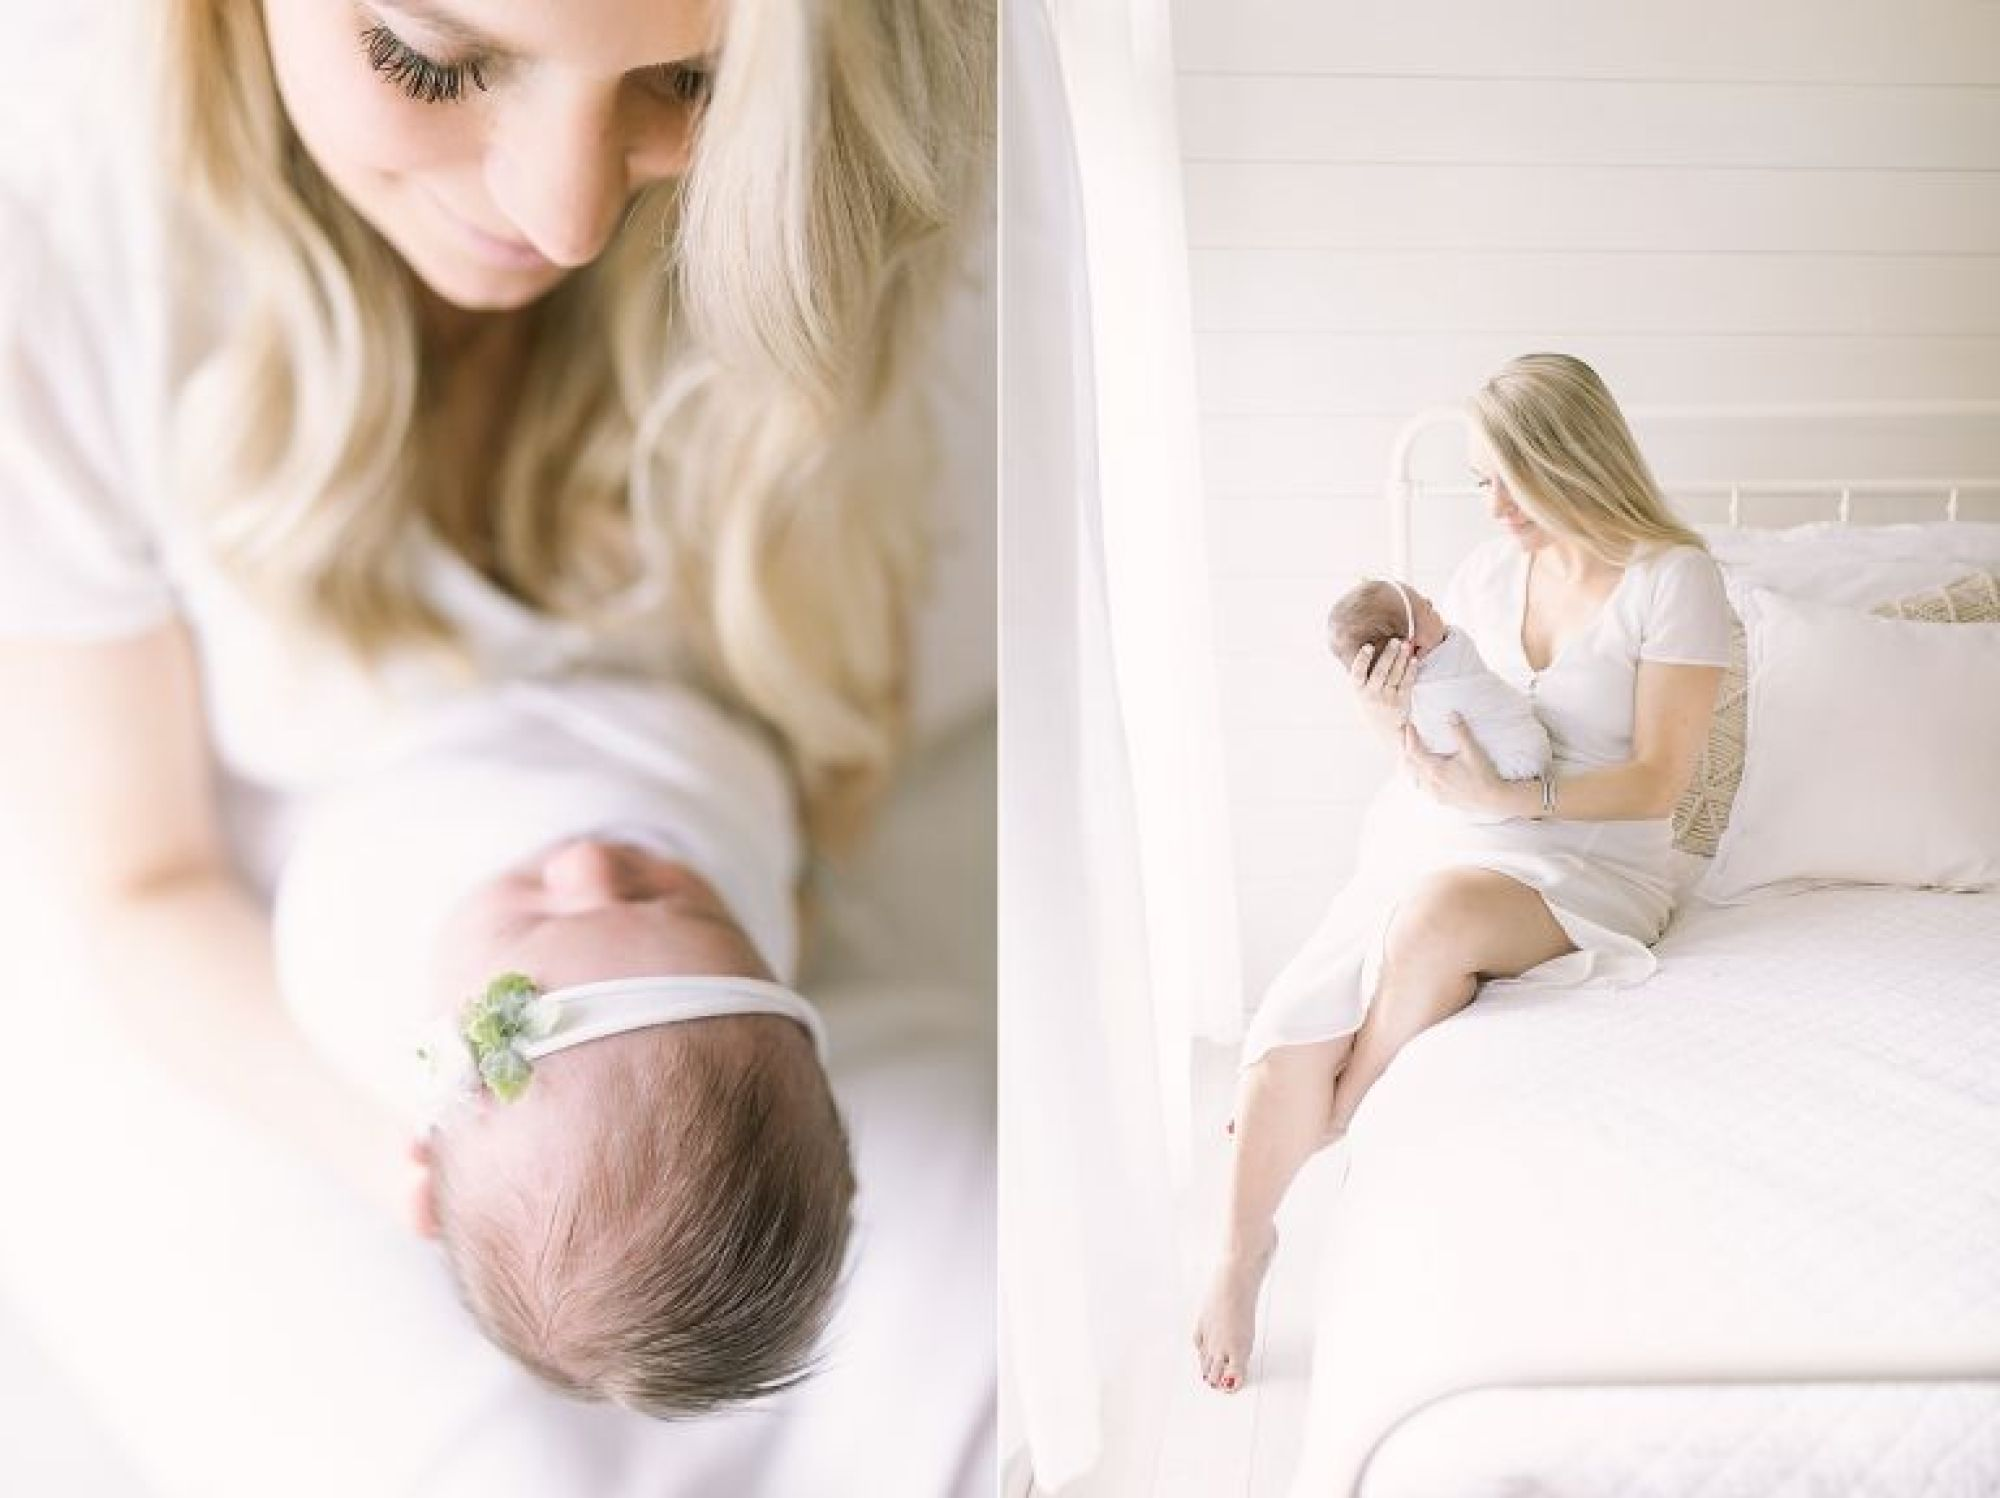 Newborn session with Mama and baby girl in Missouri City Newborn Studio. Photos by Courtney Griffin Photography.